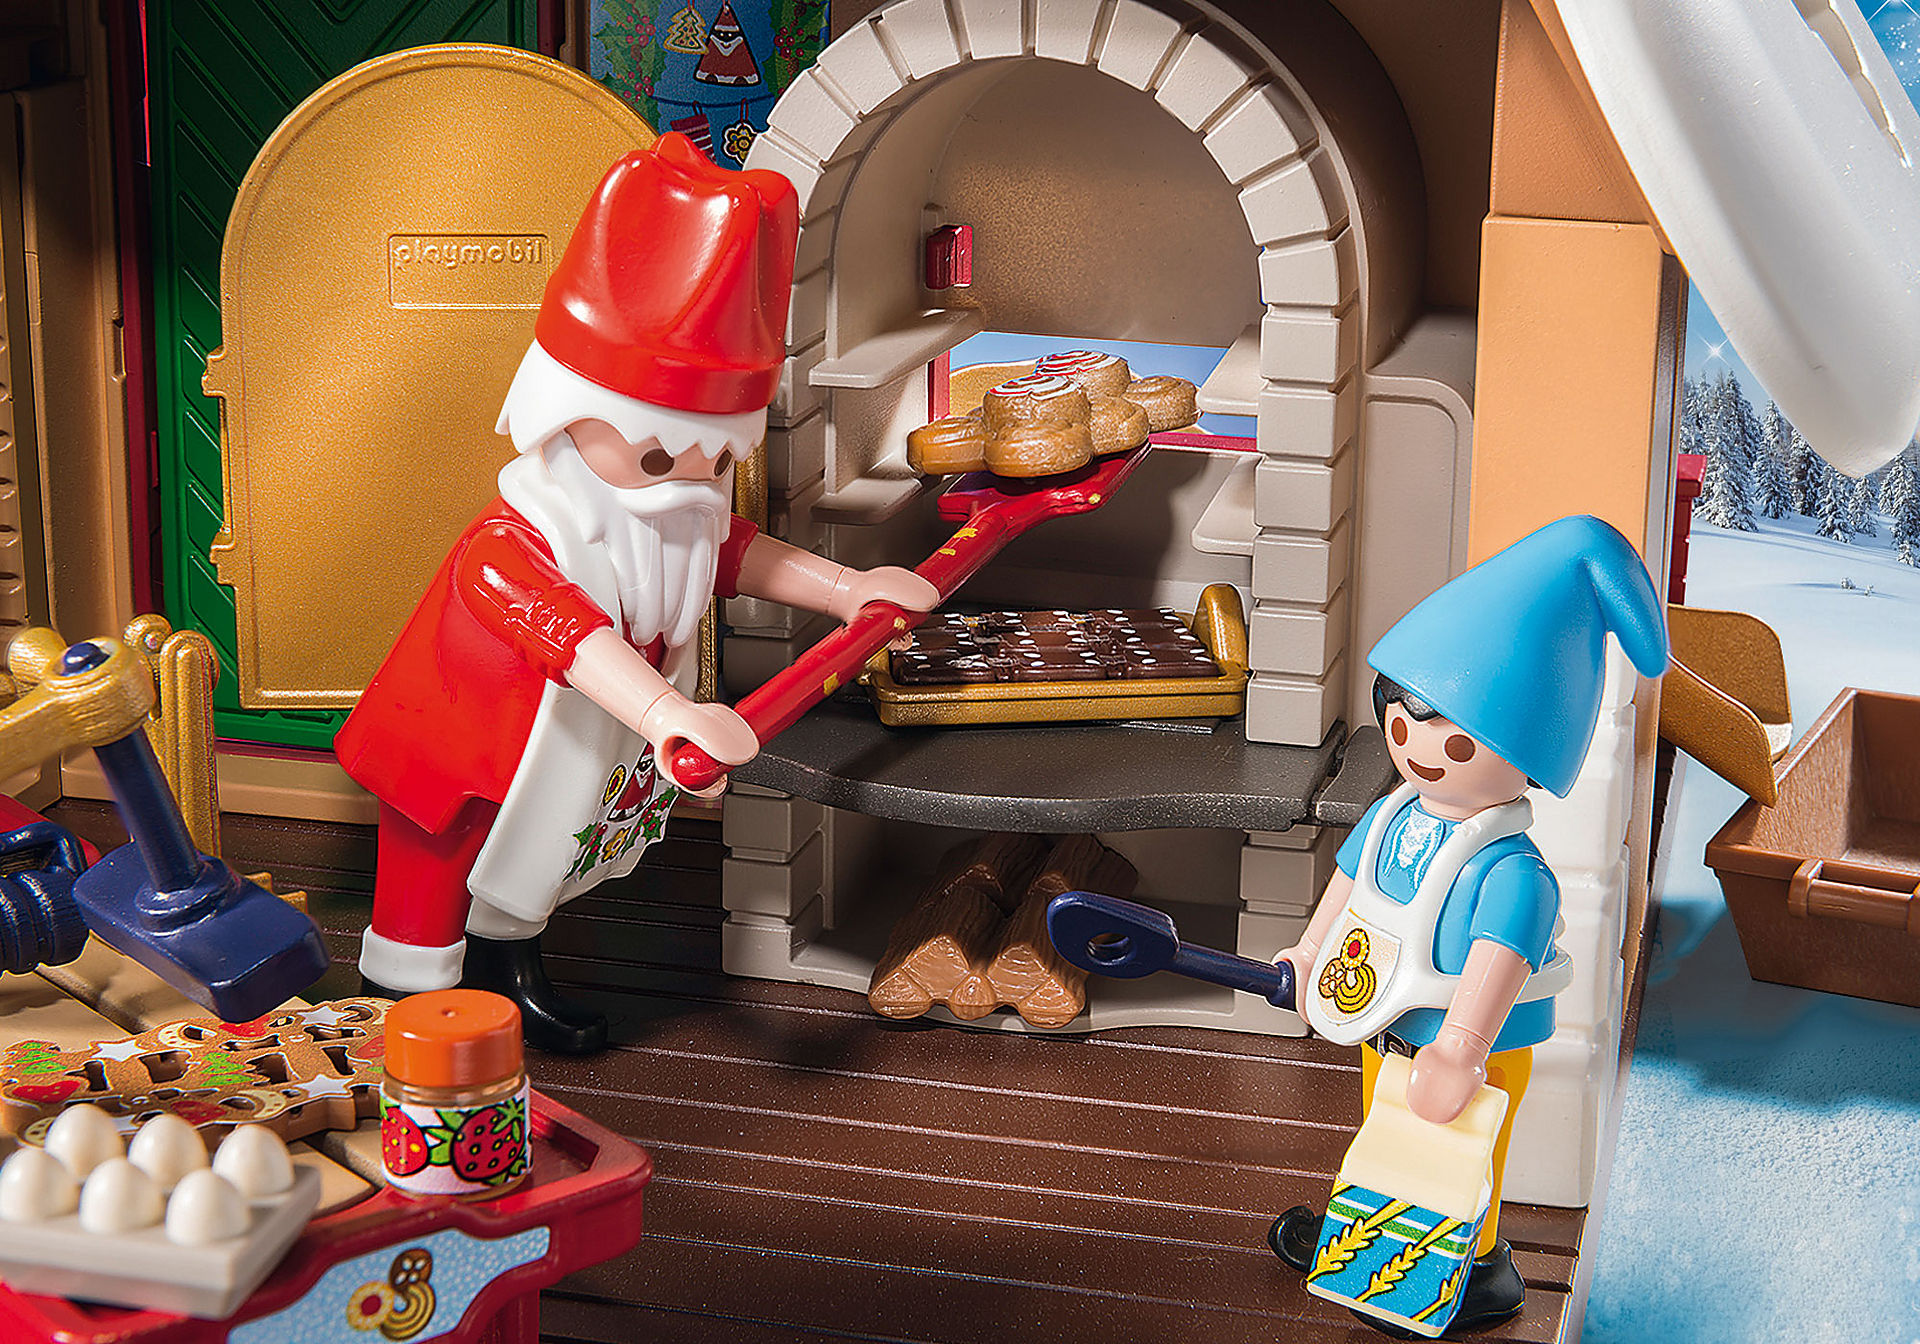 http://media.playmobil.com/i/playmobil/9493_product_extra1/Christmas Bakery with Cookie Cutters